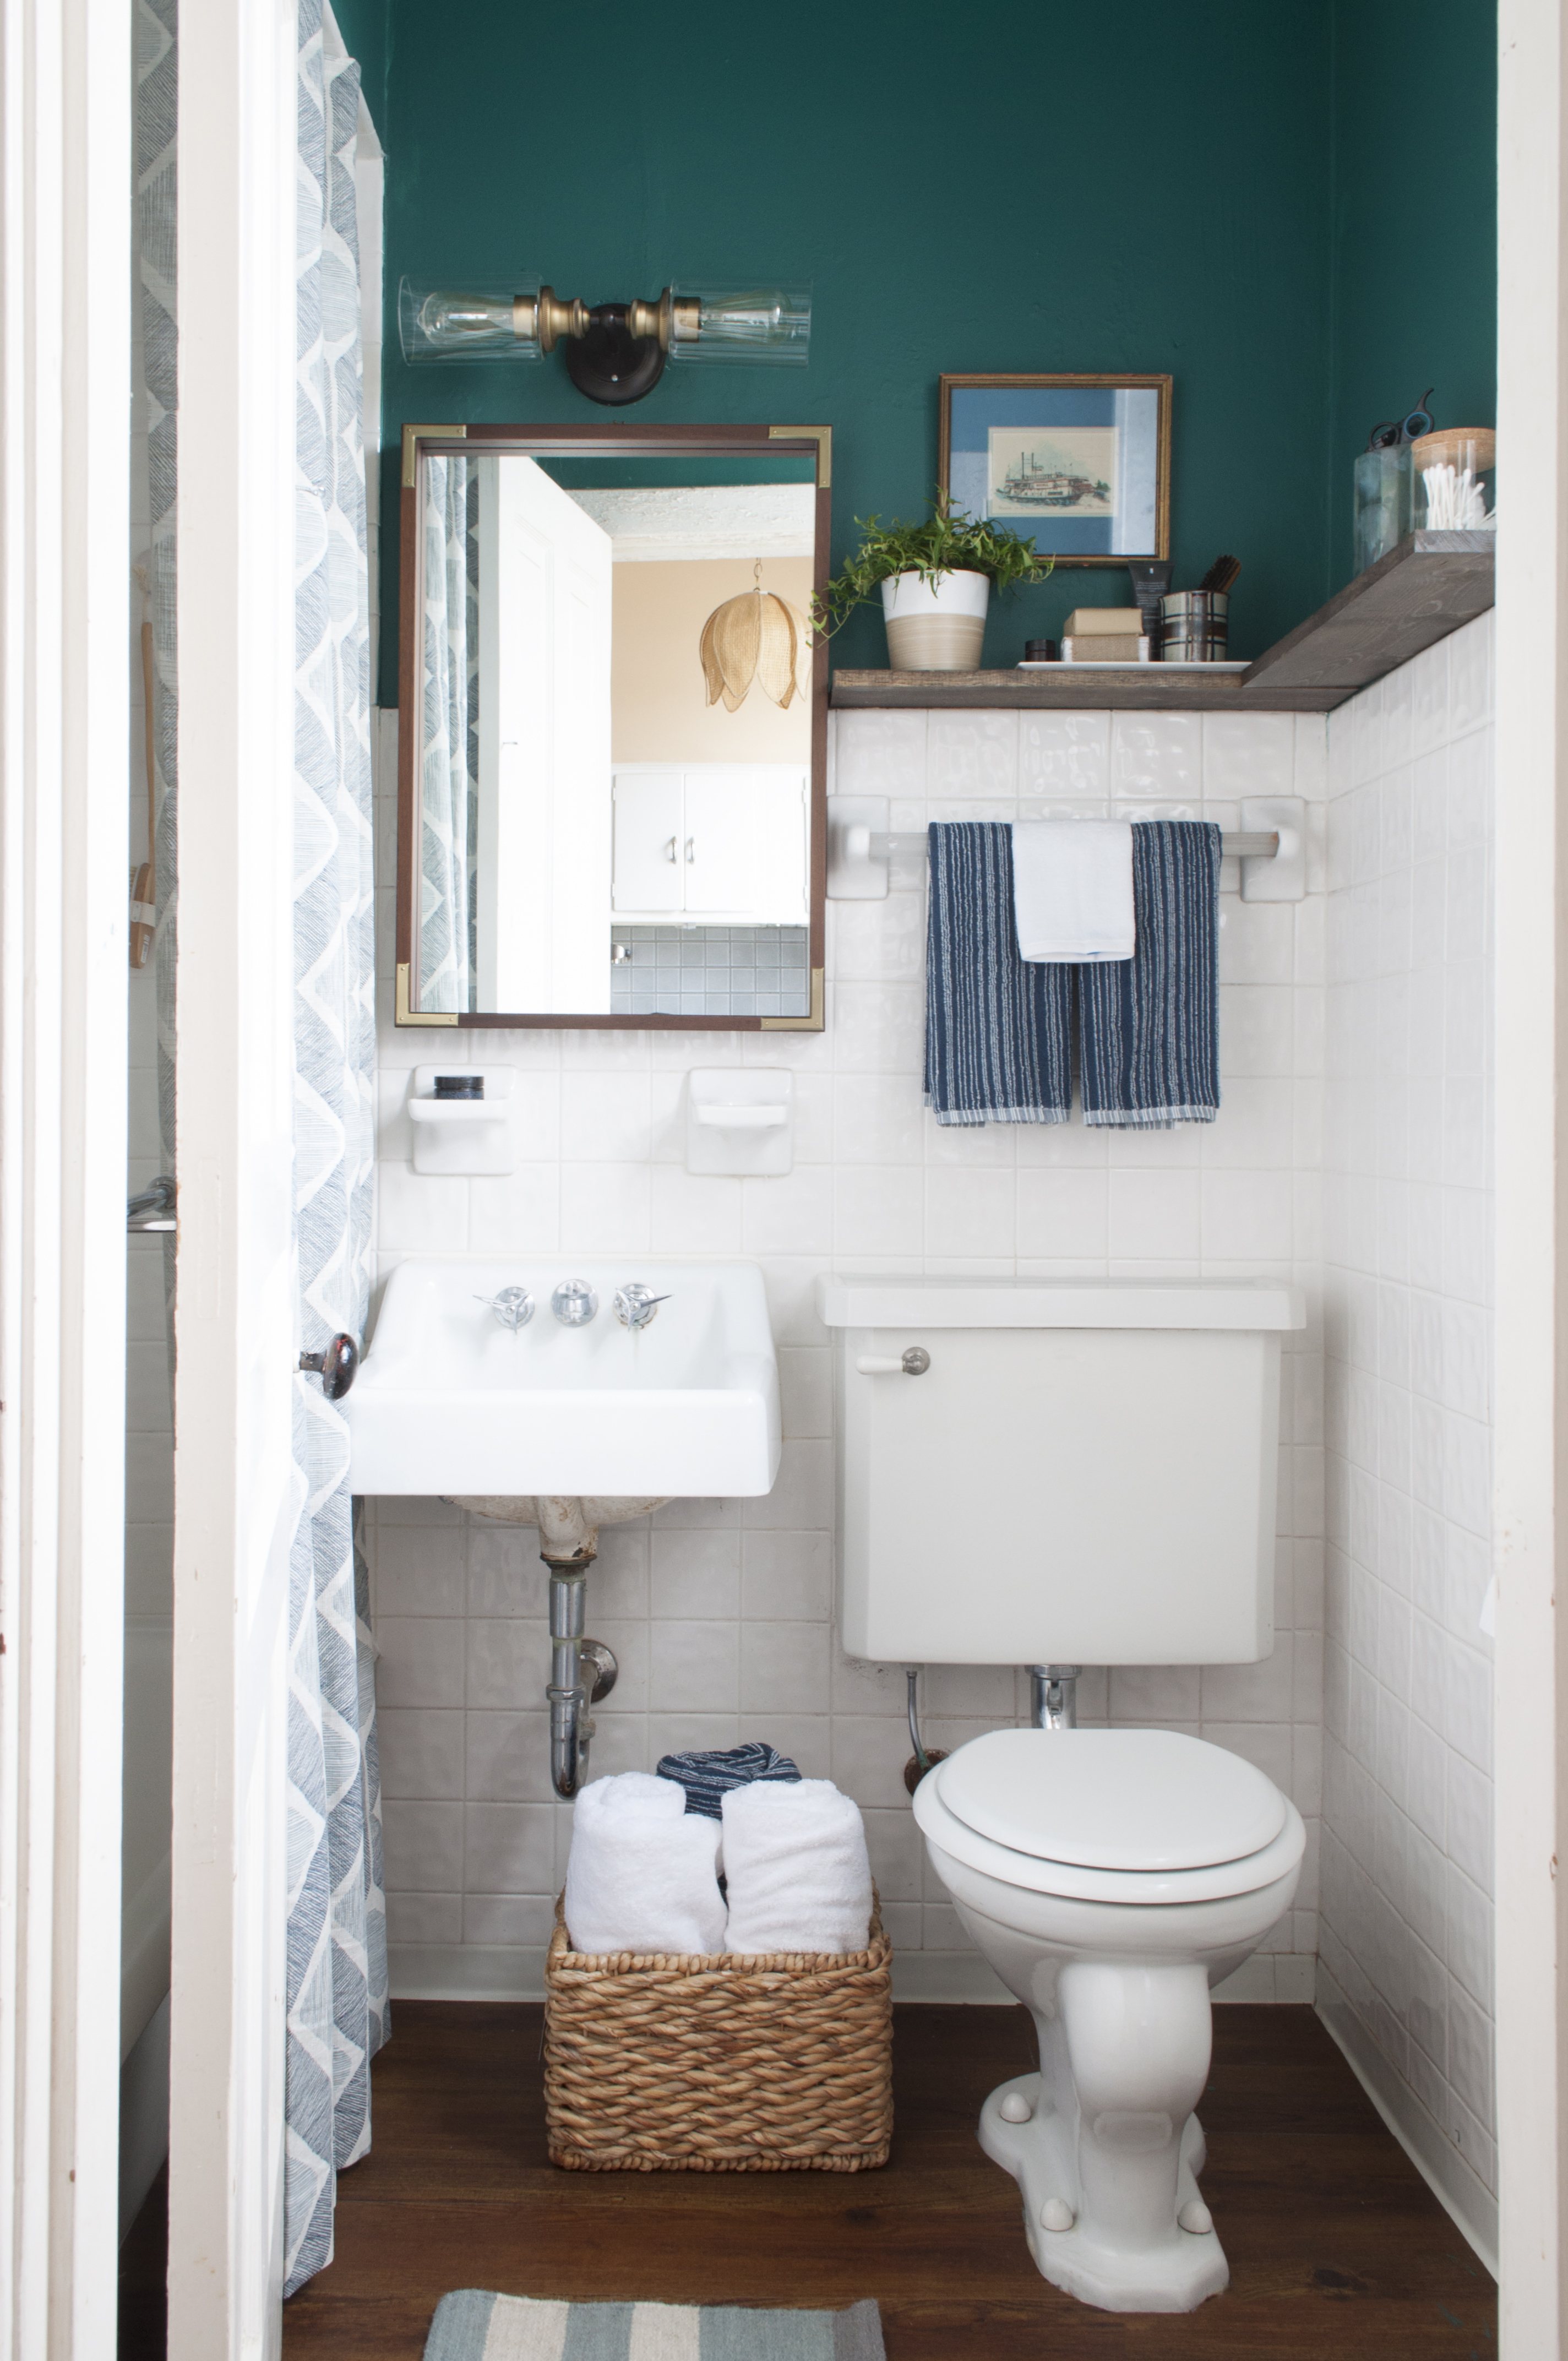 10 Stylish Solutions for Ugly Rental Bathrooms | Apartment Therapy